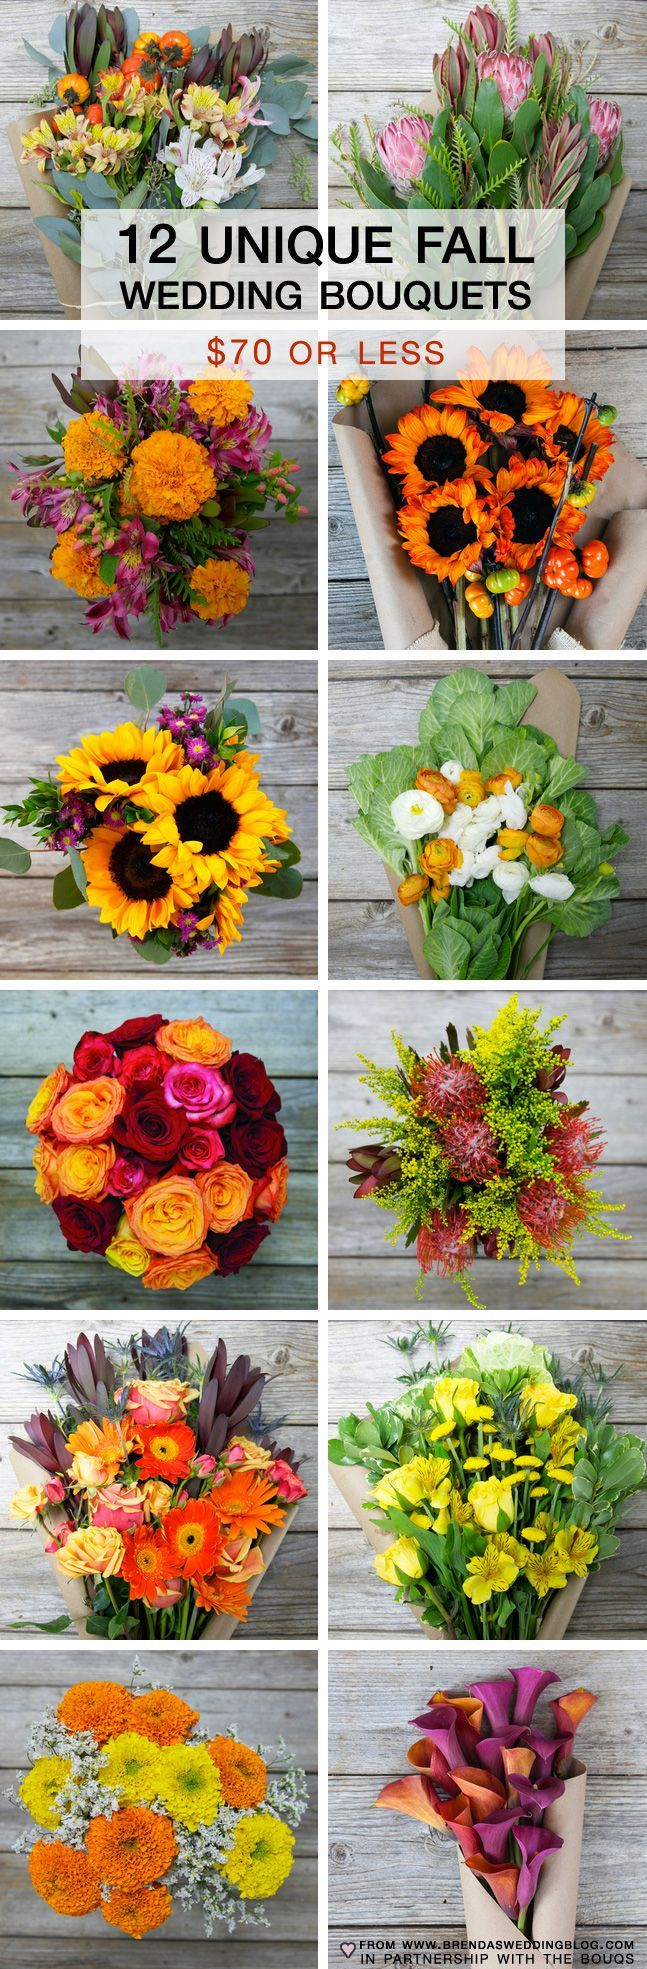 12 Unique Fall Wedding Bouquets {priced between $40 – $70}